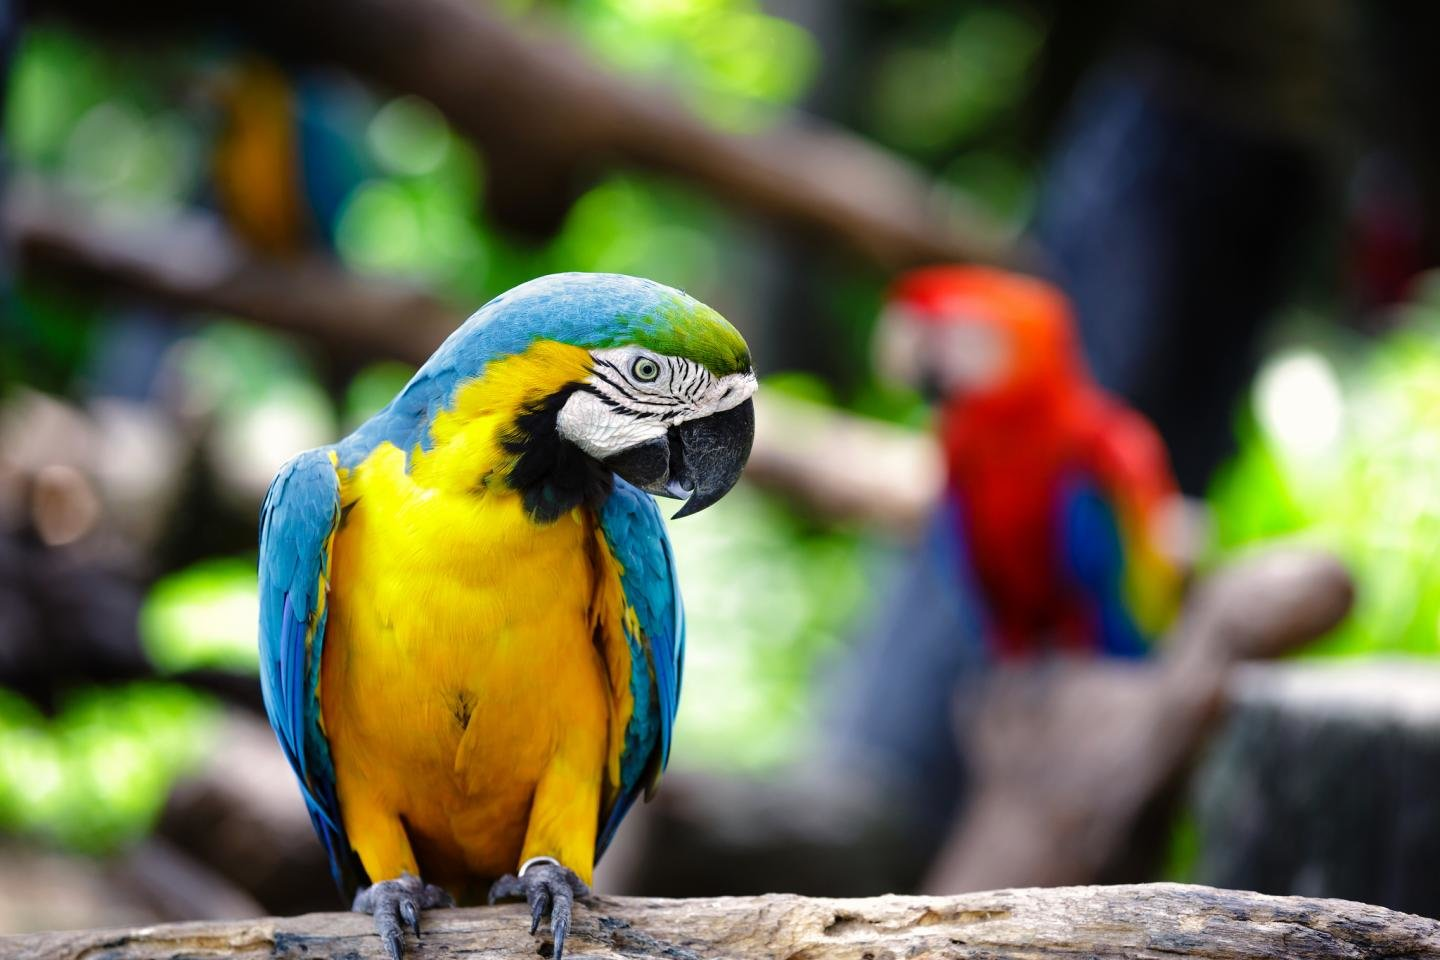 Best Macaw wallpaper ID:46418 for High Resolution hd 1440x960 computer